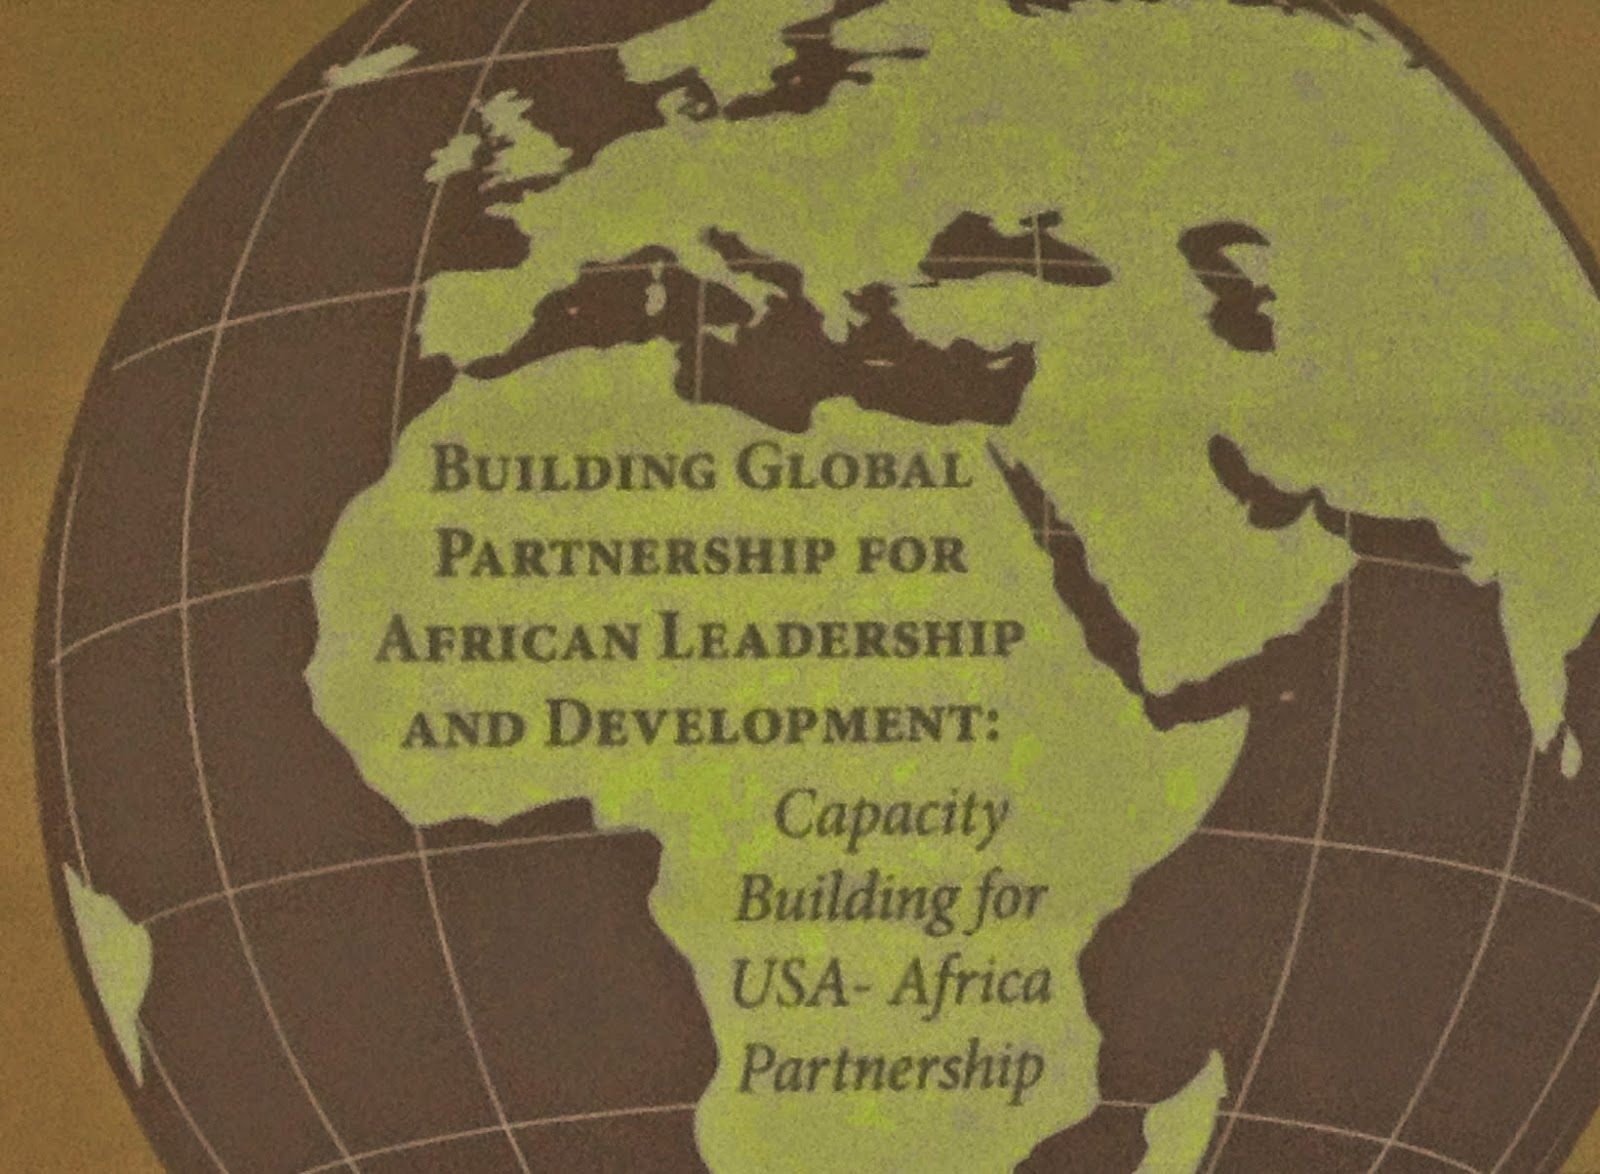 Building Global Partnership For African Leadership and Development